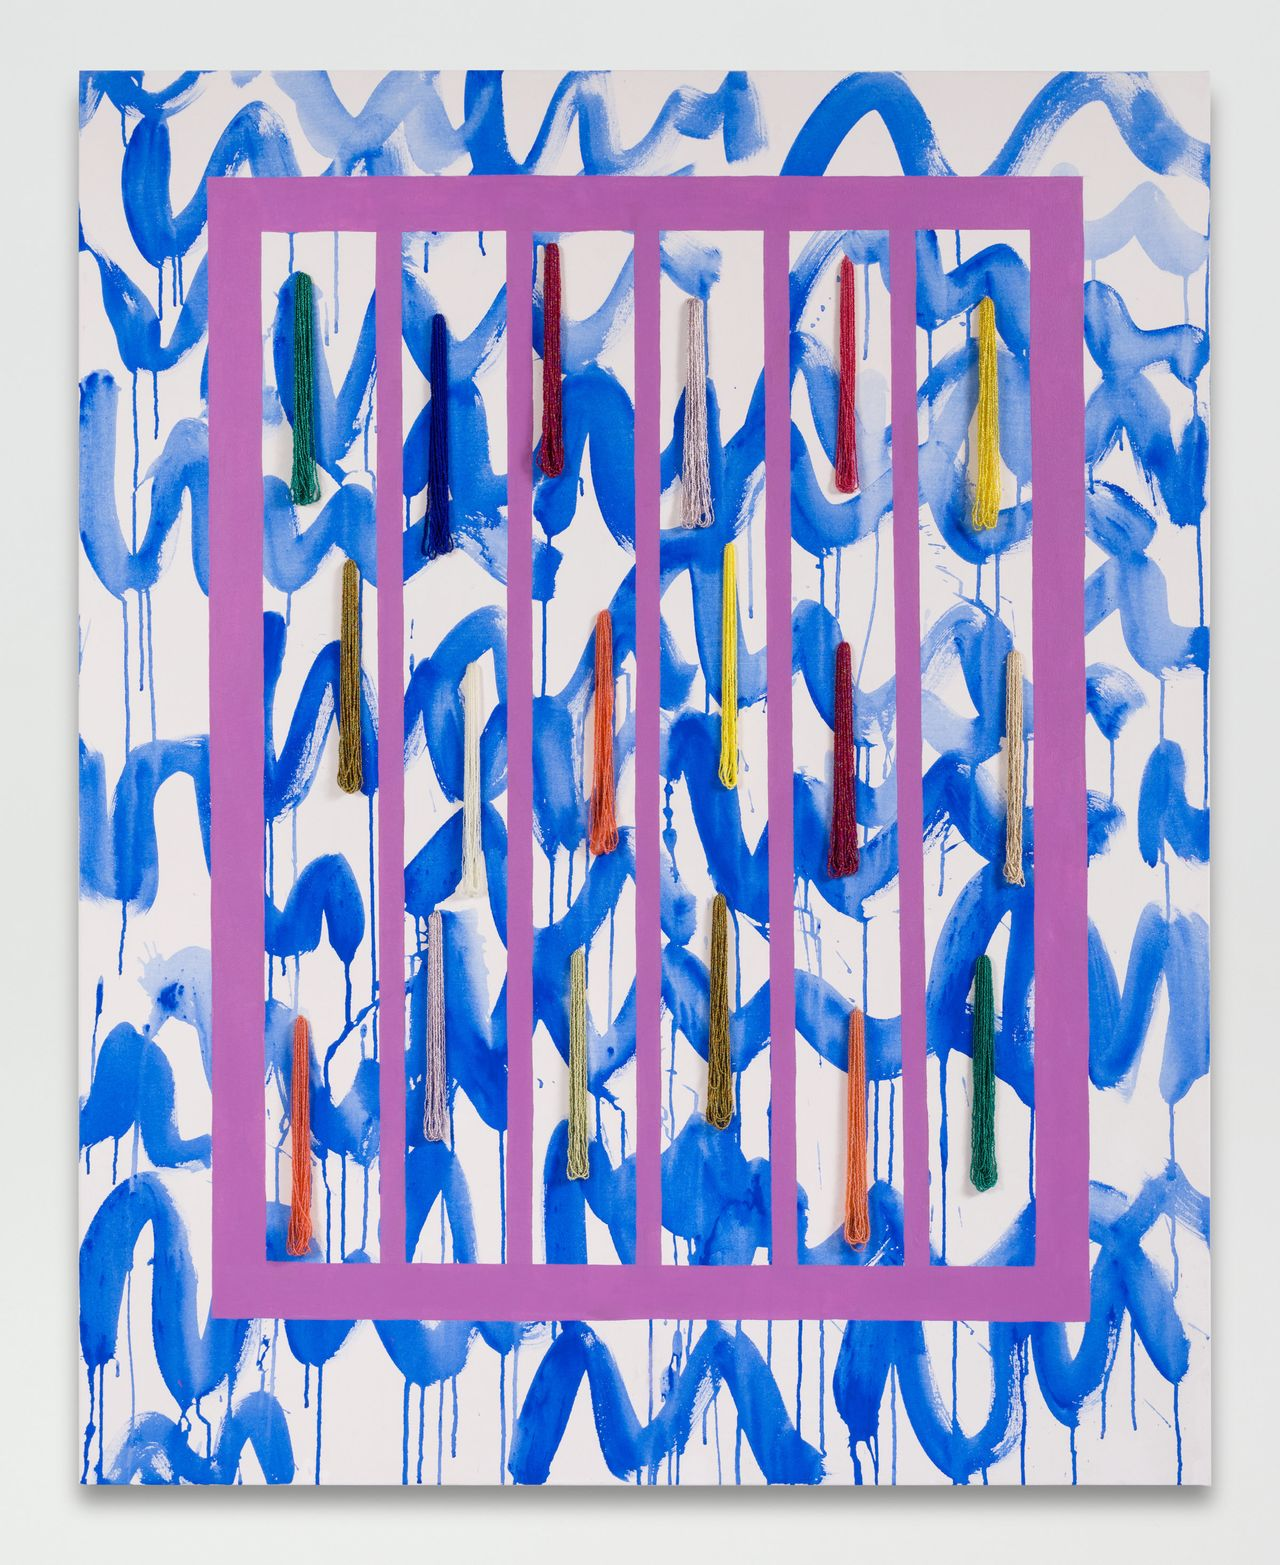 """Sarah Cain, """"waves,"""" 2016. Beads and acrylic on canvas, 60 x 48 inches."""